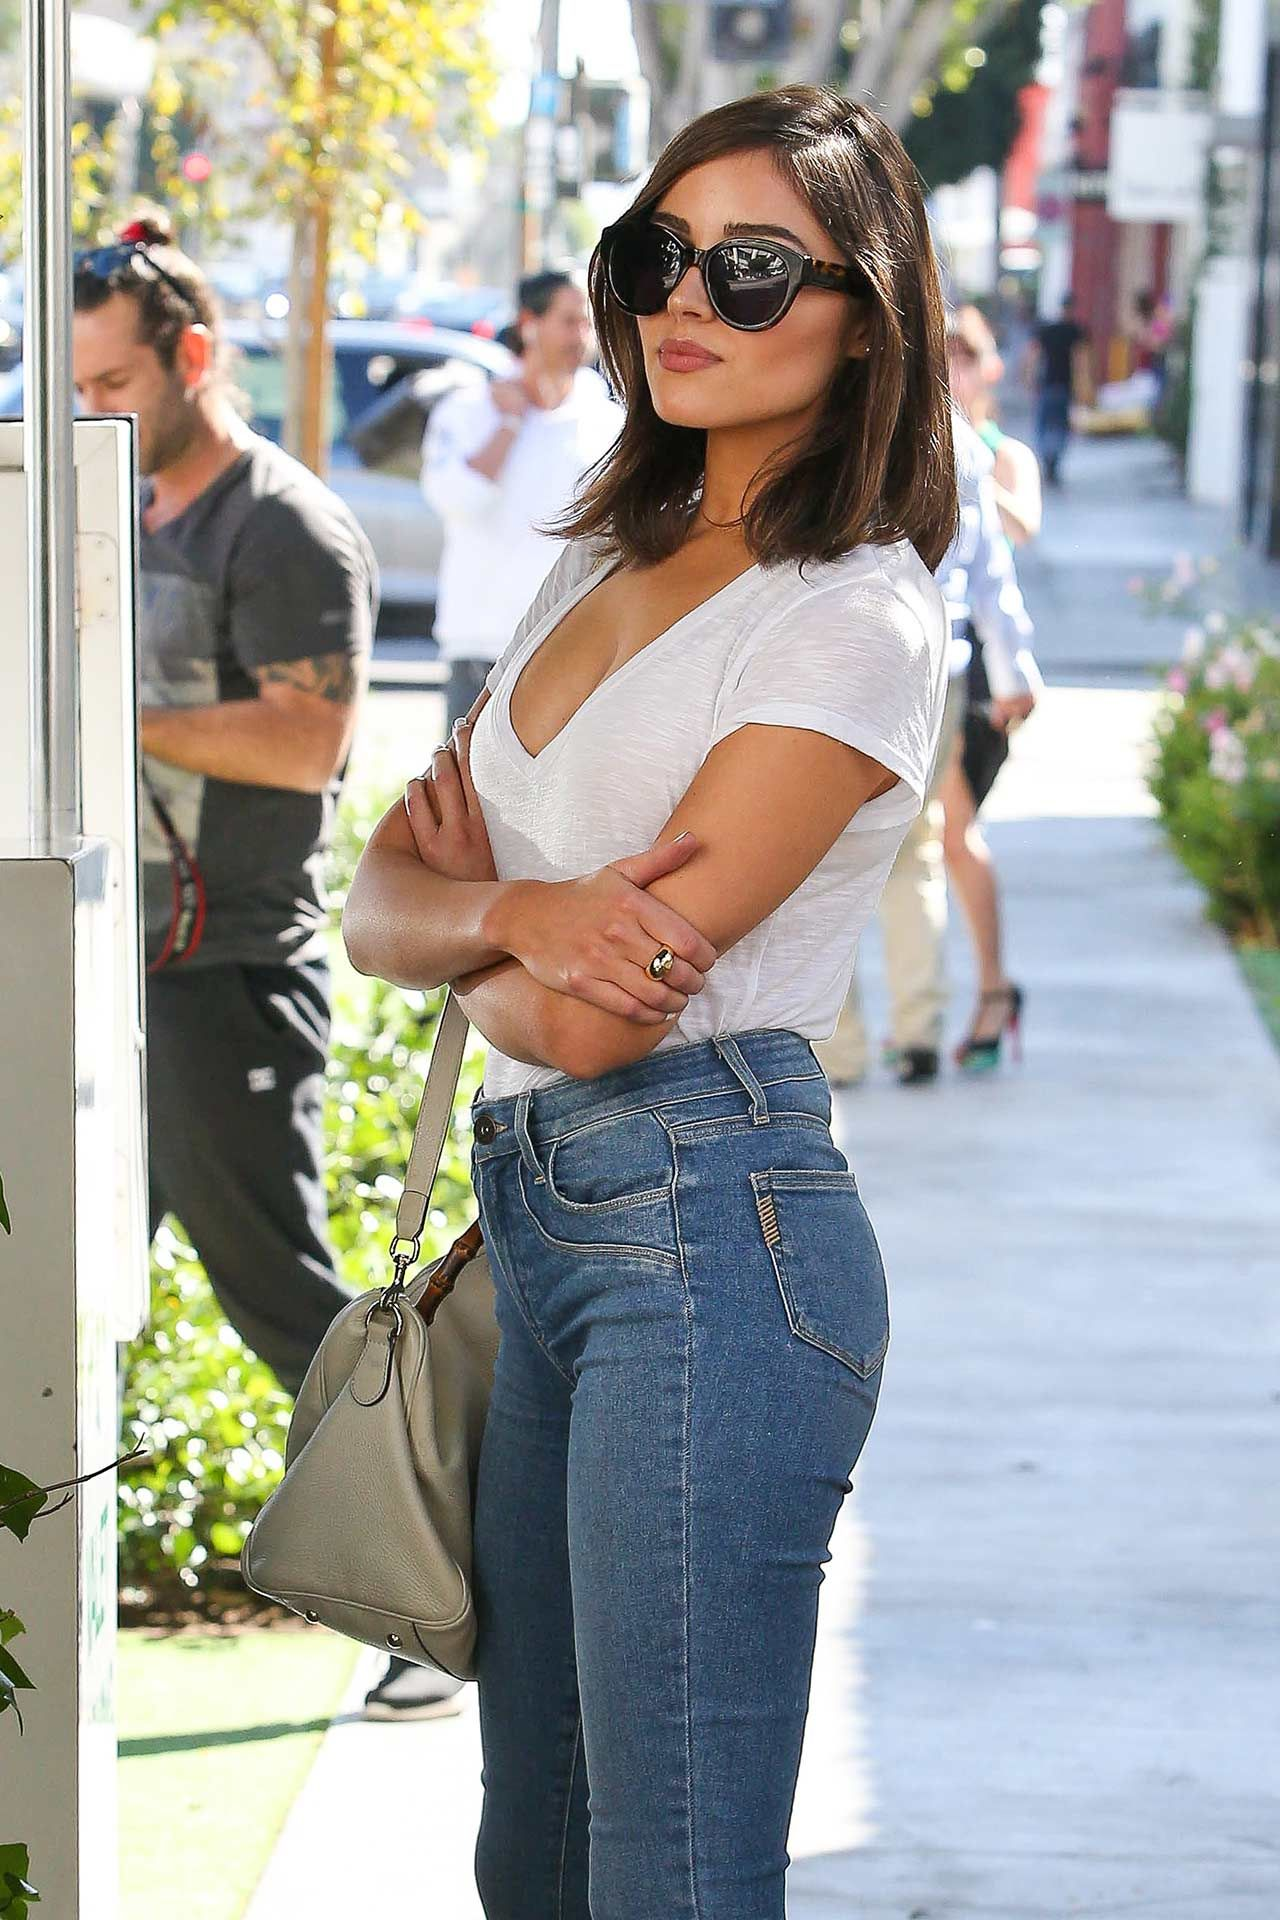 Olivia Culpo Wears PAIGE Hoxton Ankle Jeans | The Jeans Blog